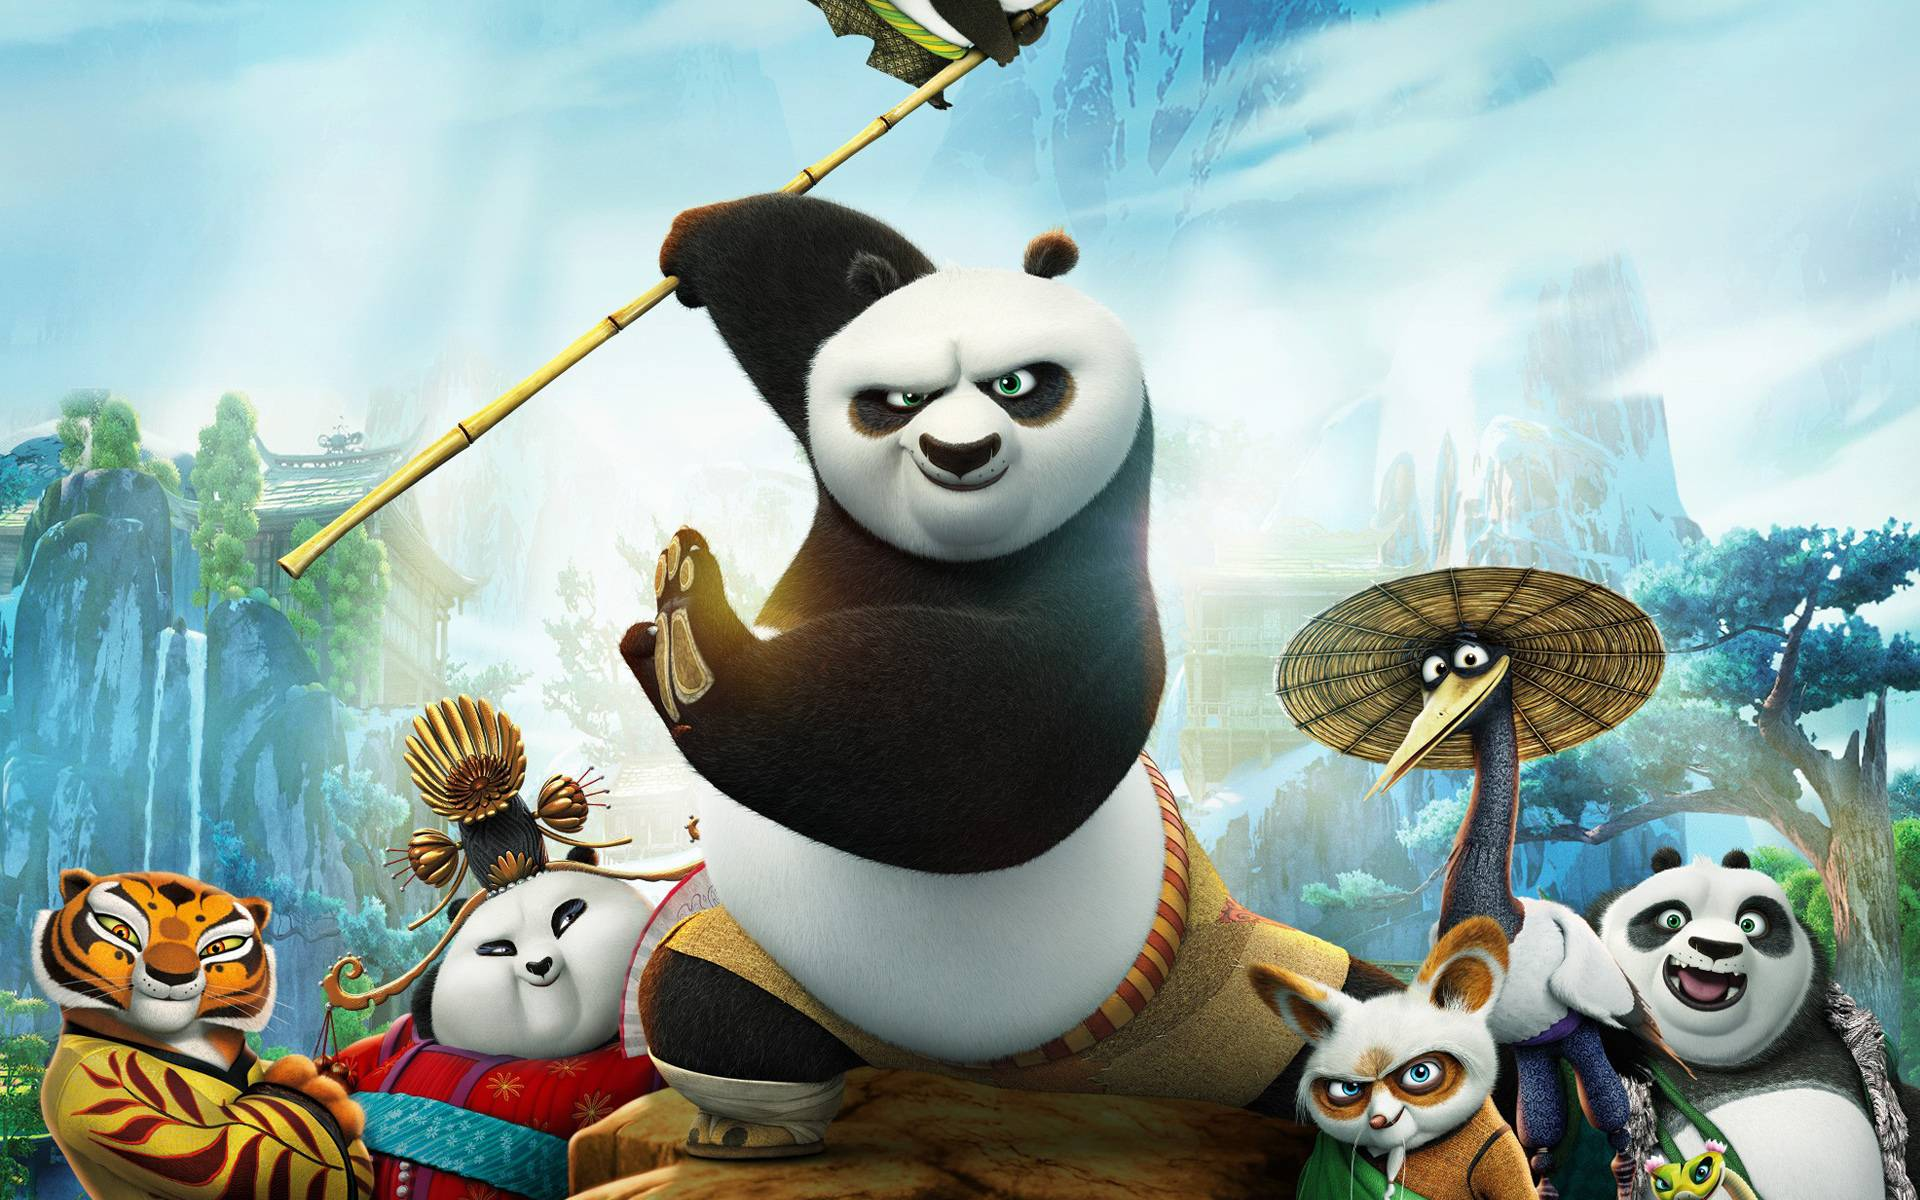 kungfupanda3movie2016wide-7b71974b6c4d016e3d843df101c3c89c.jpg